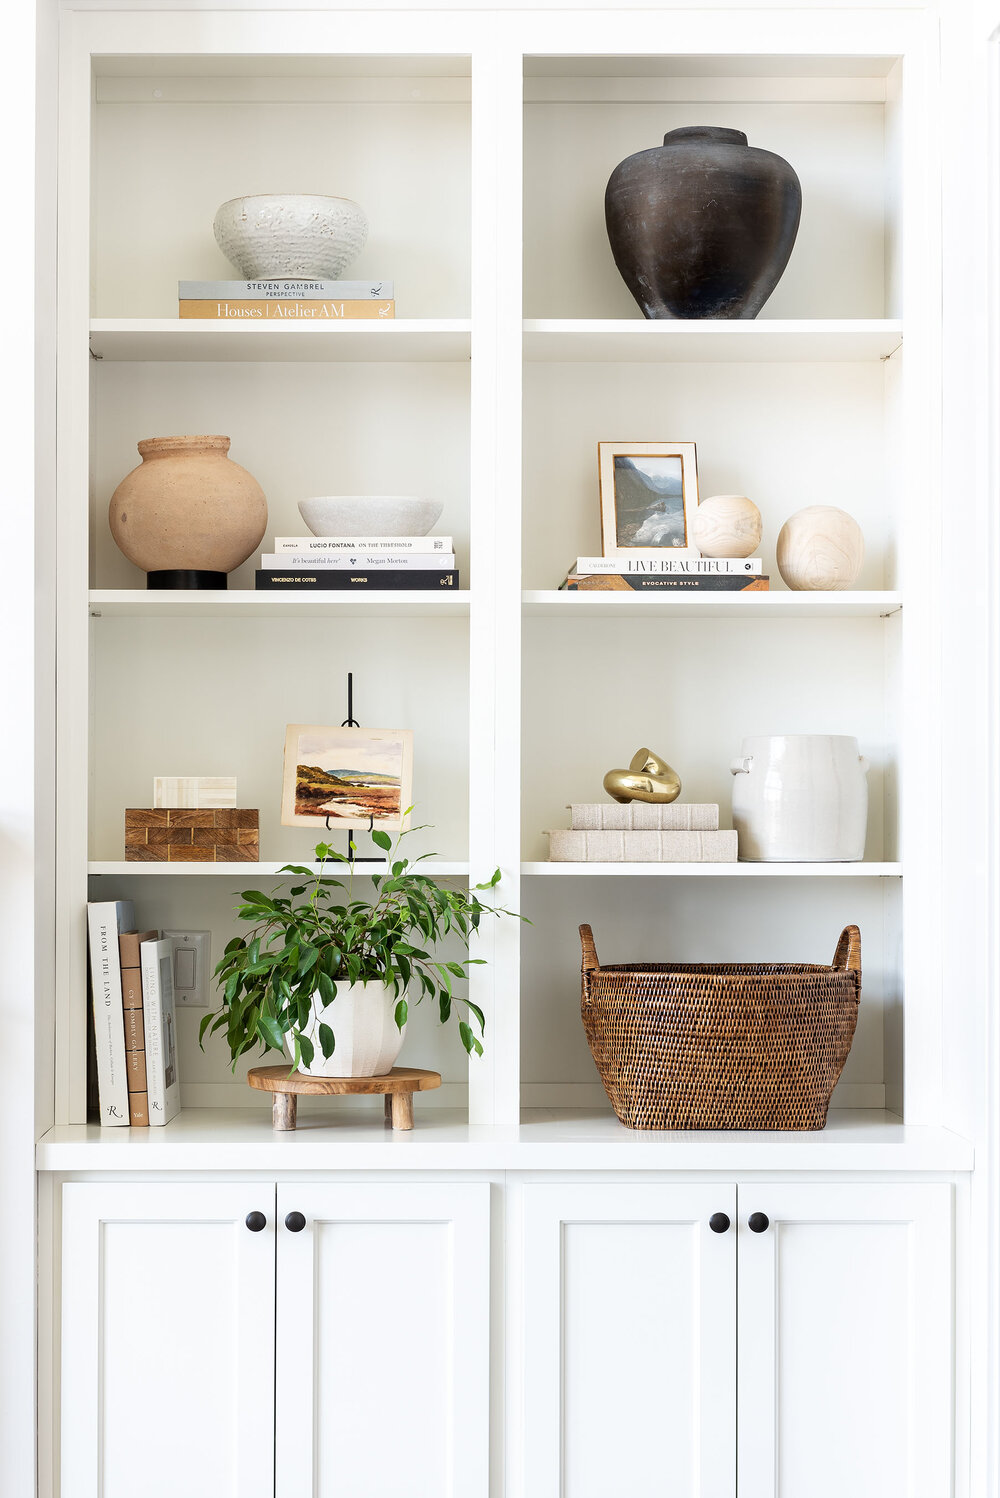 A Step-By-Step Built-In Styling Process